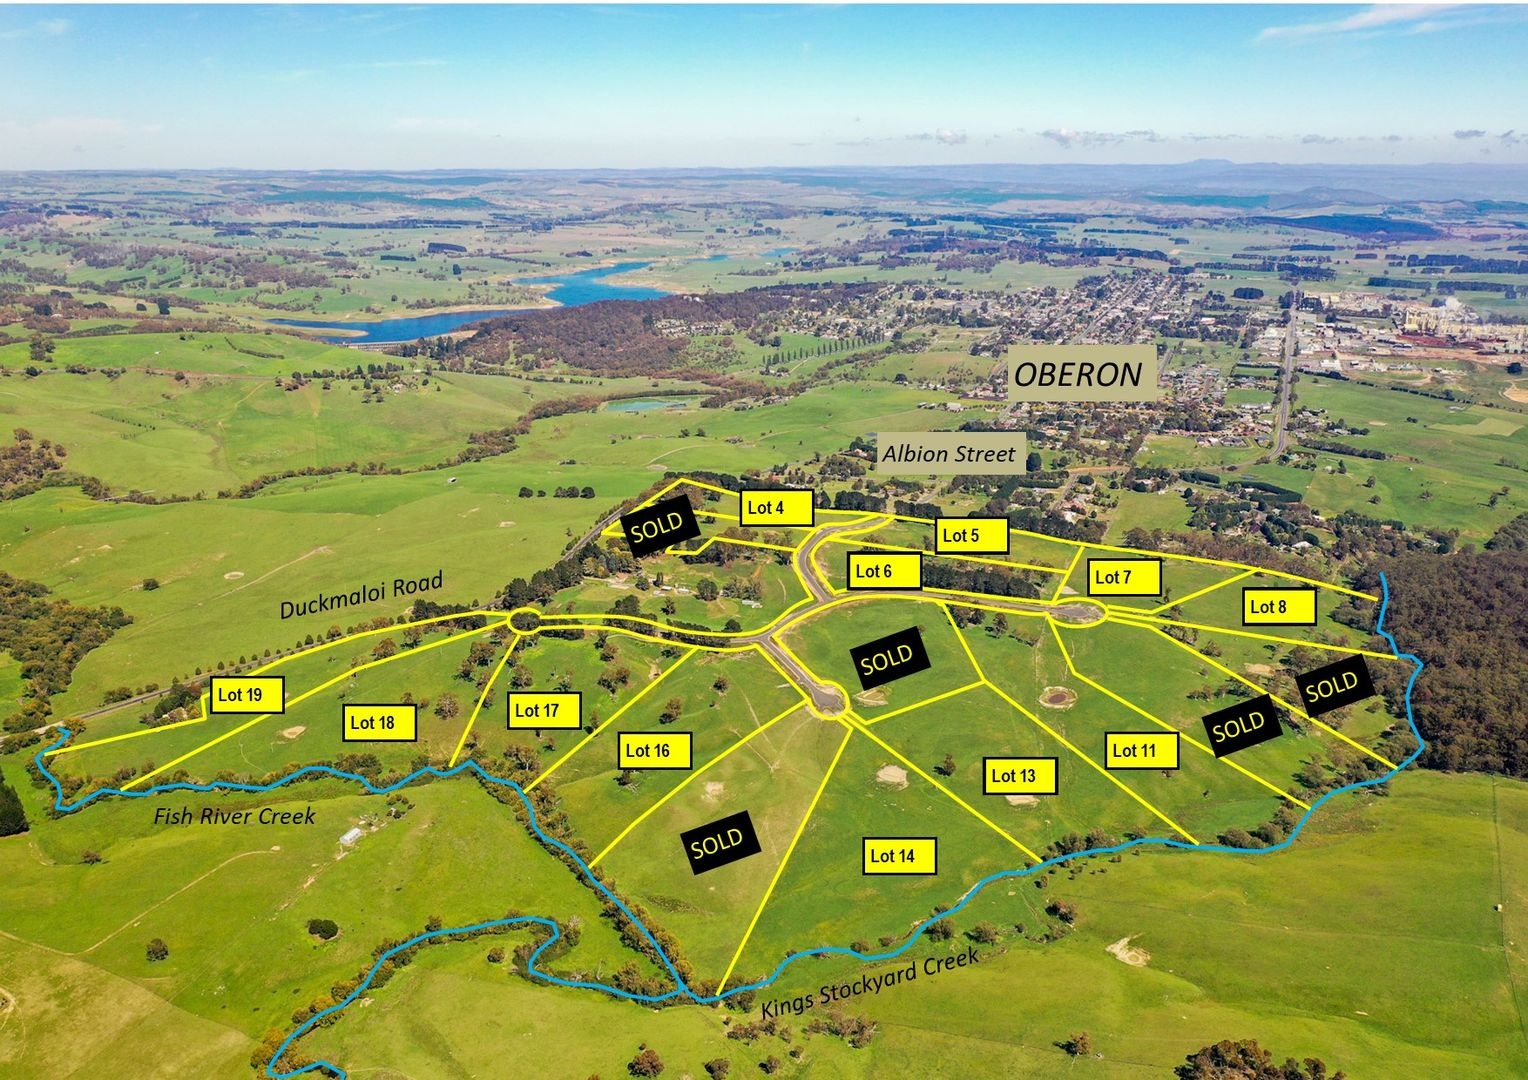 Kings Creek Rural Residential Land Release, Oberon NSW 2787, Image 0